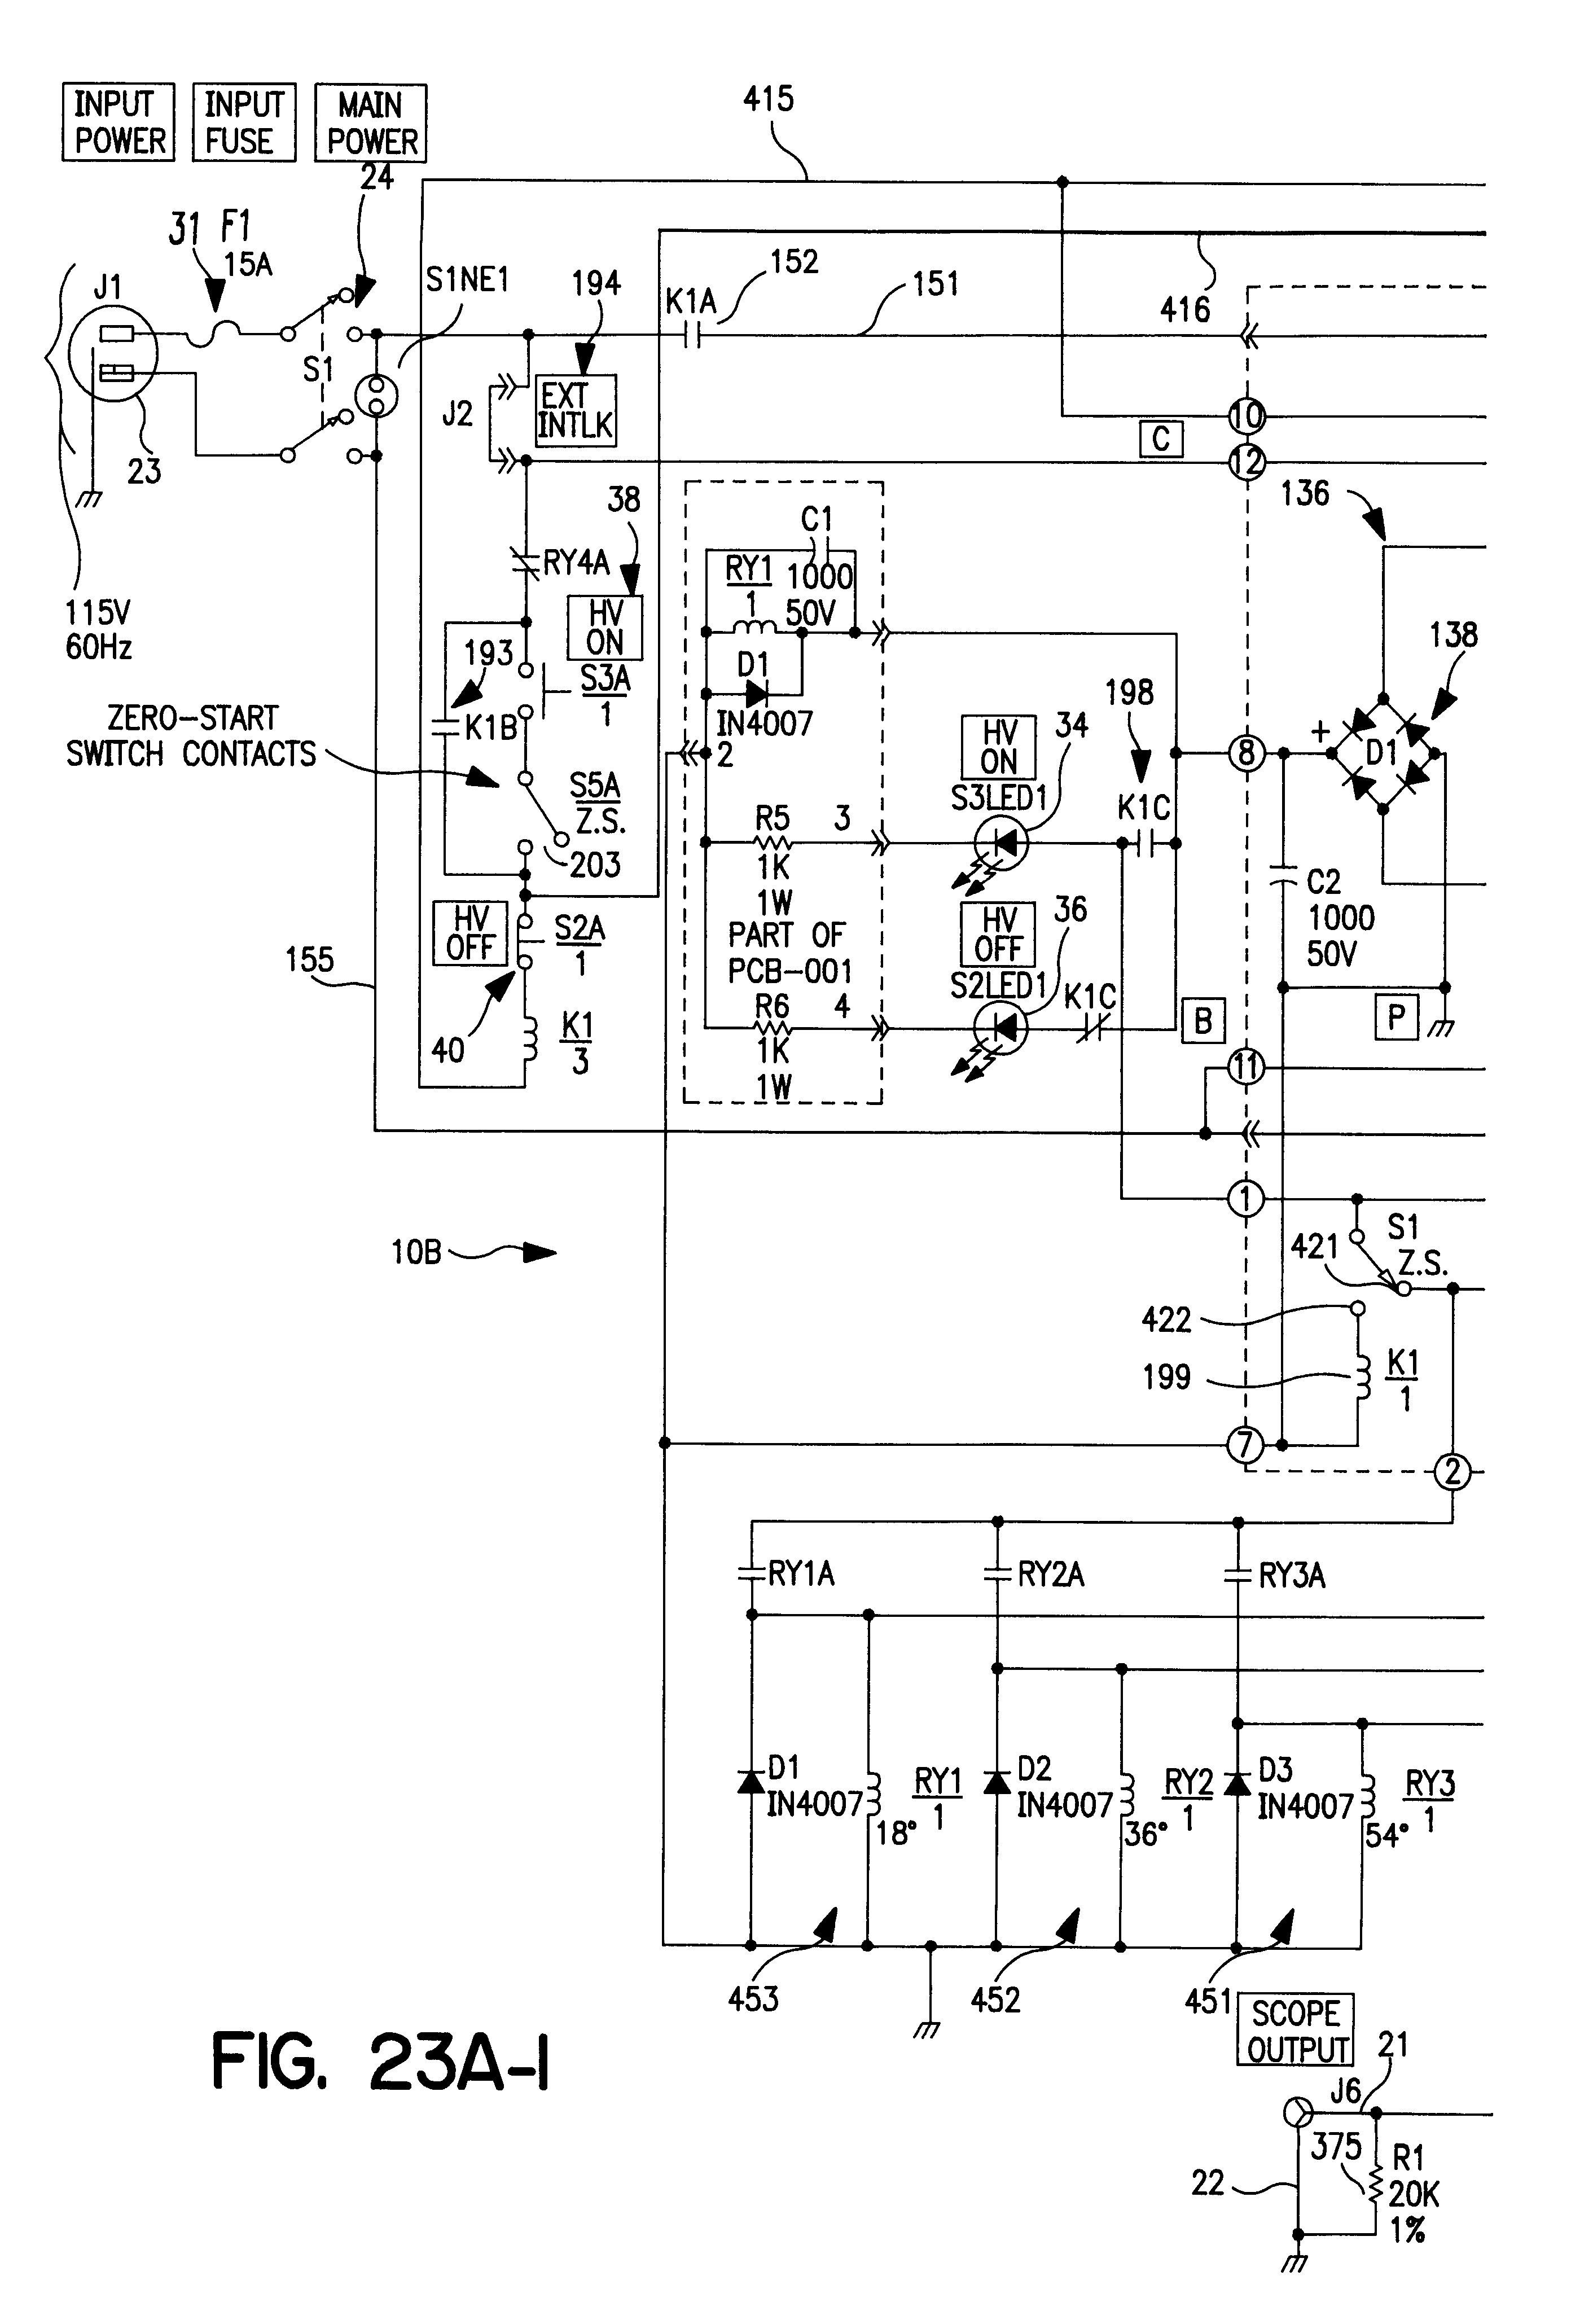 Us D likewise Rv Distribution Panel Wiring Diagram Wiring Diagram Distribution Board New Rv Distribution Panel Wiring Diagram How To Wire Safety Switch A likewise Solenoid together with Holding Tank together with Rv Holding Tank Monitor System Of Rv Holding Tank Wiring Diagram. on kib rv monitor panel wiring diagram